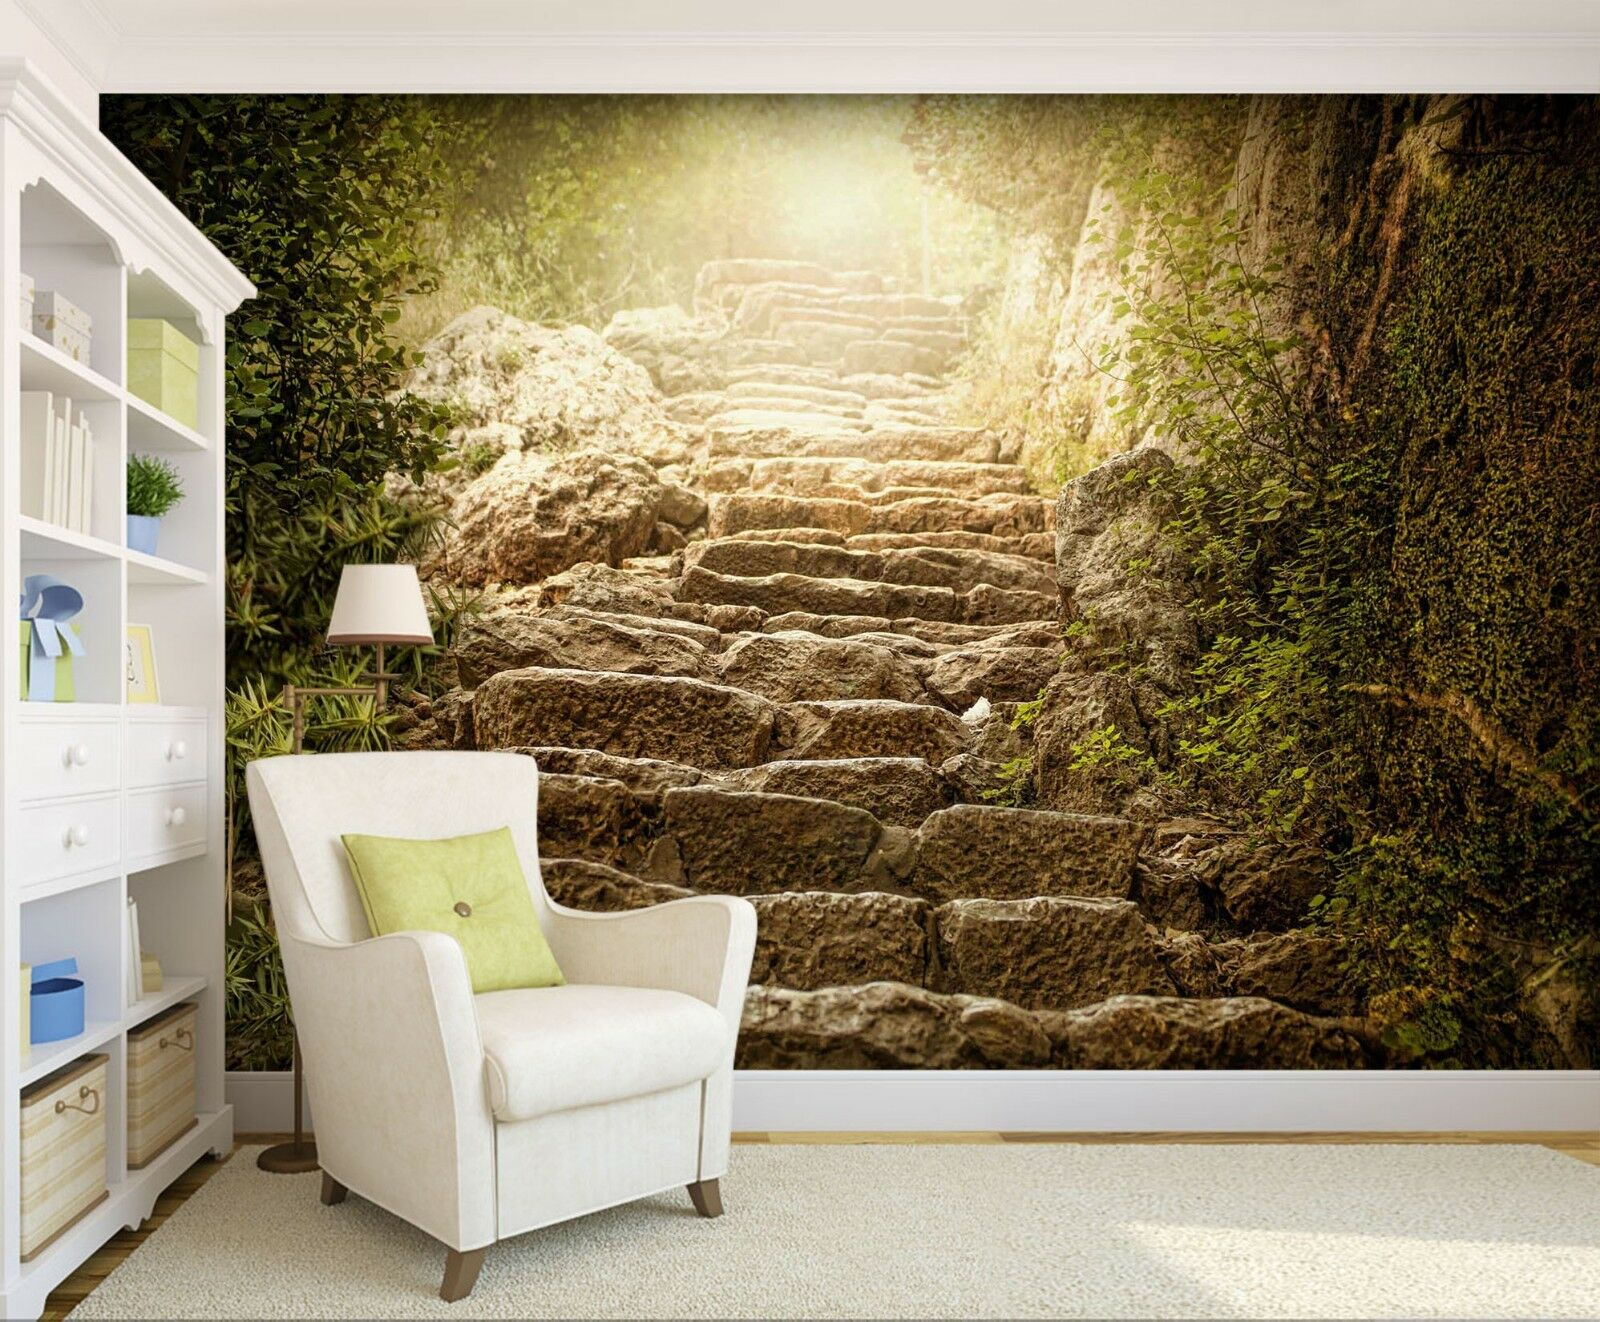 3D Ladder Tree 7293 Wallpaper Mural Wall Print Wall Wallpaper Murals US Lemon